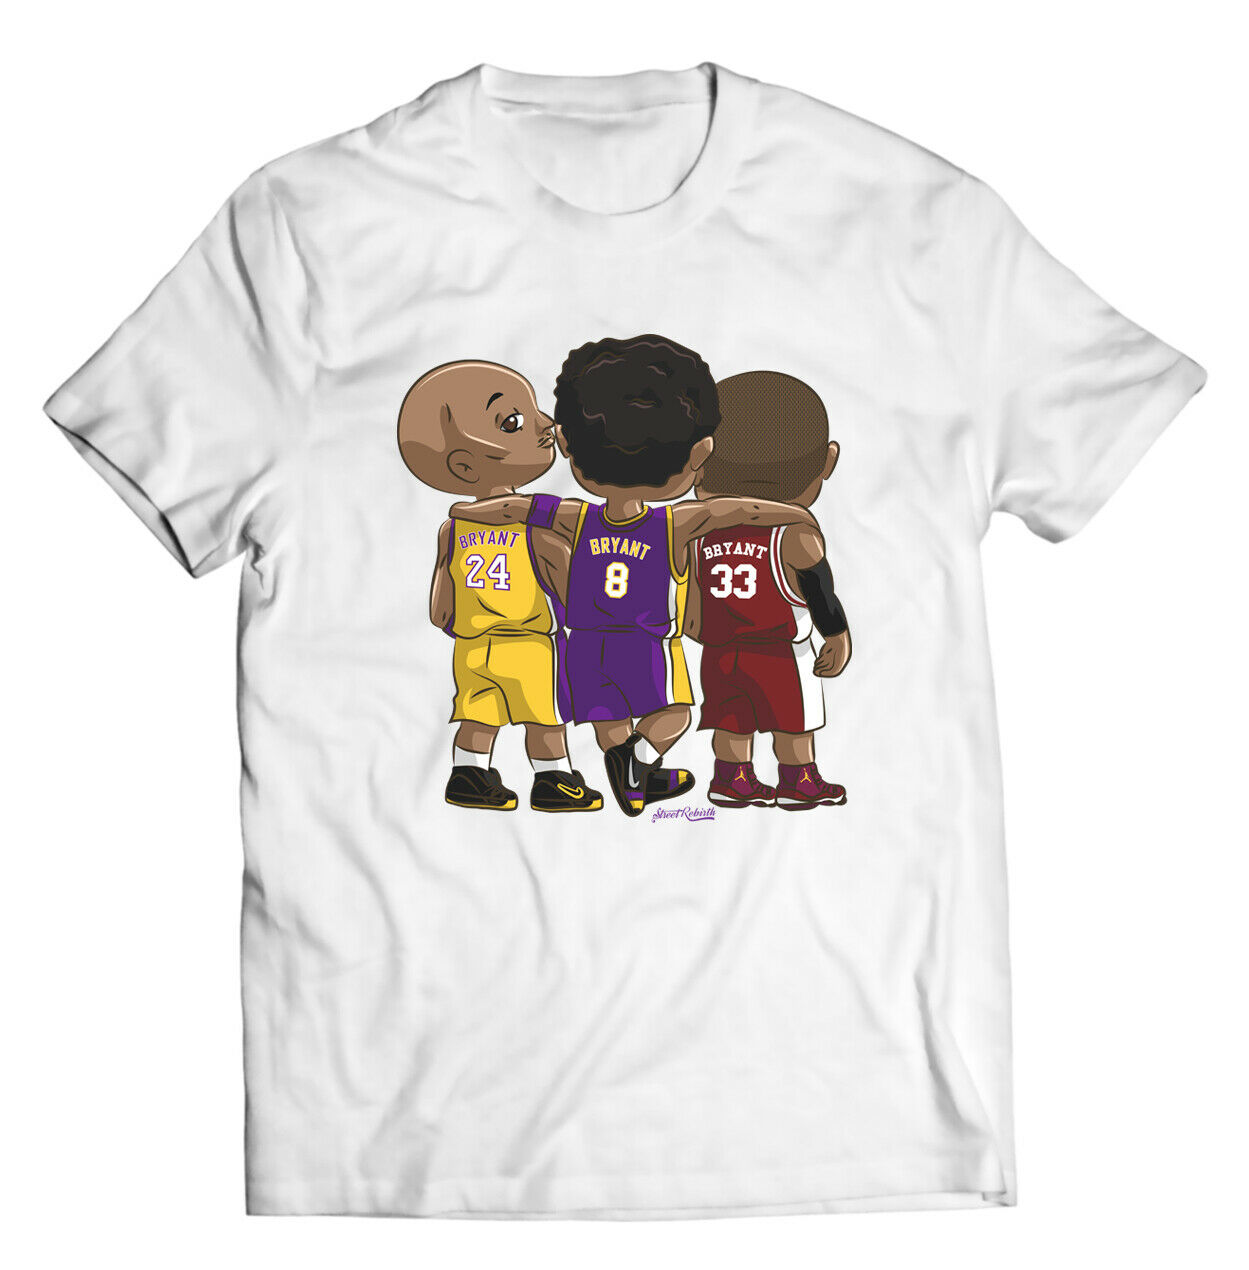 Rip GOAT!! Kobe Bryant T-Shirt - Cool Funny La Lakers Basketball Gift For Her Him